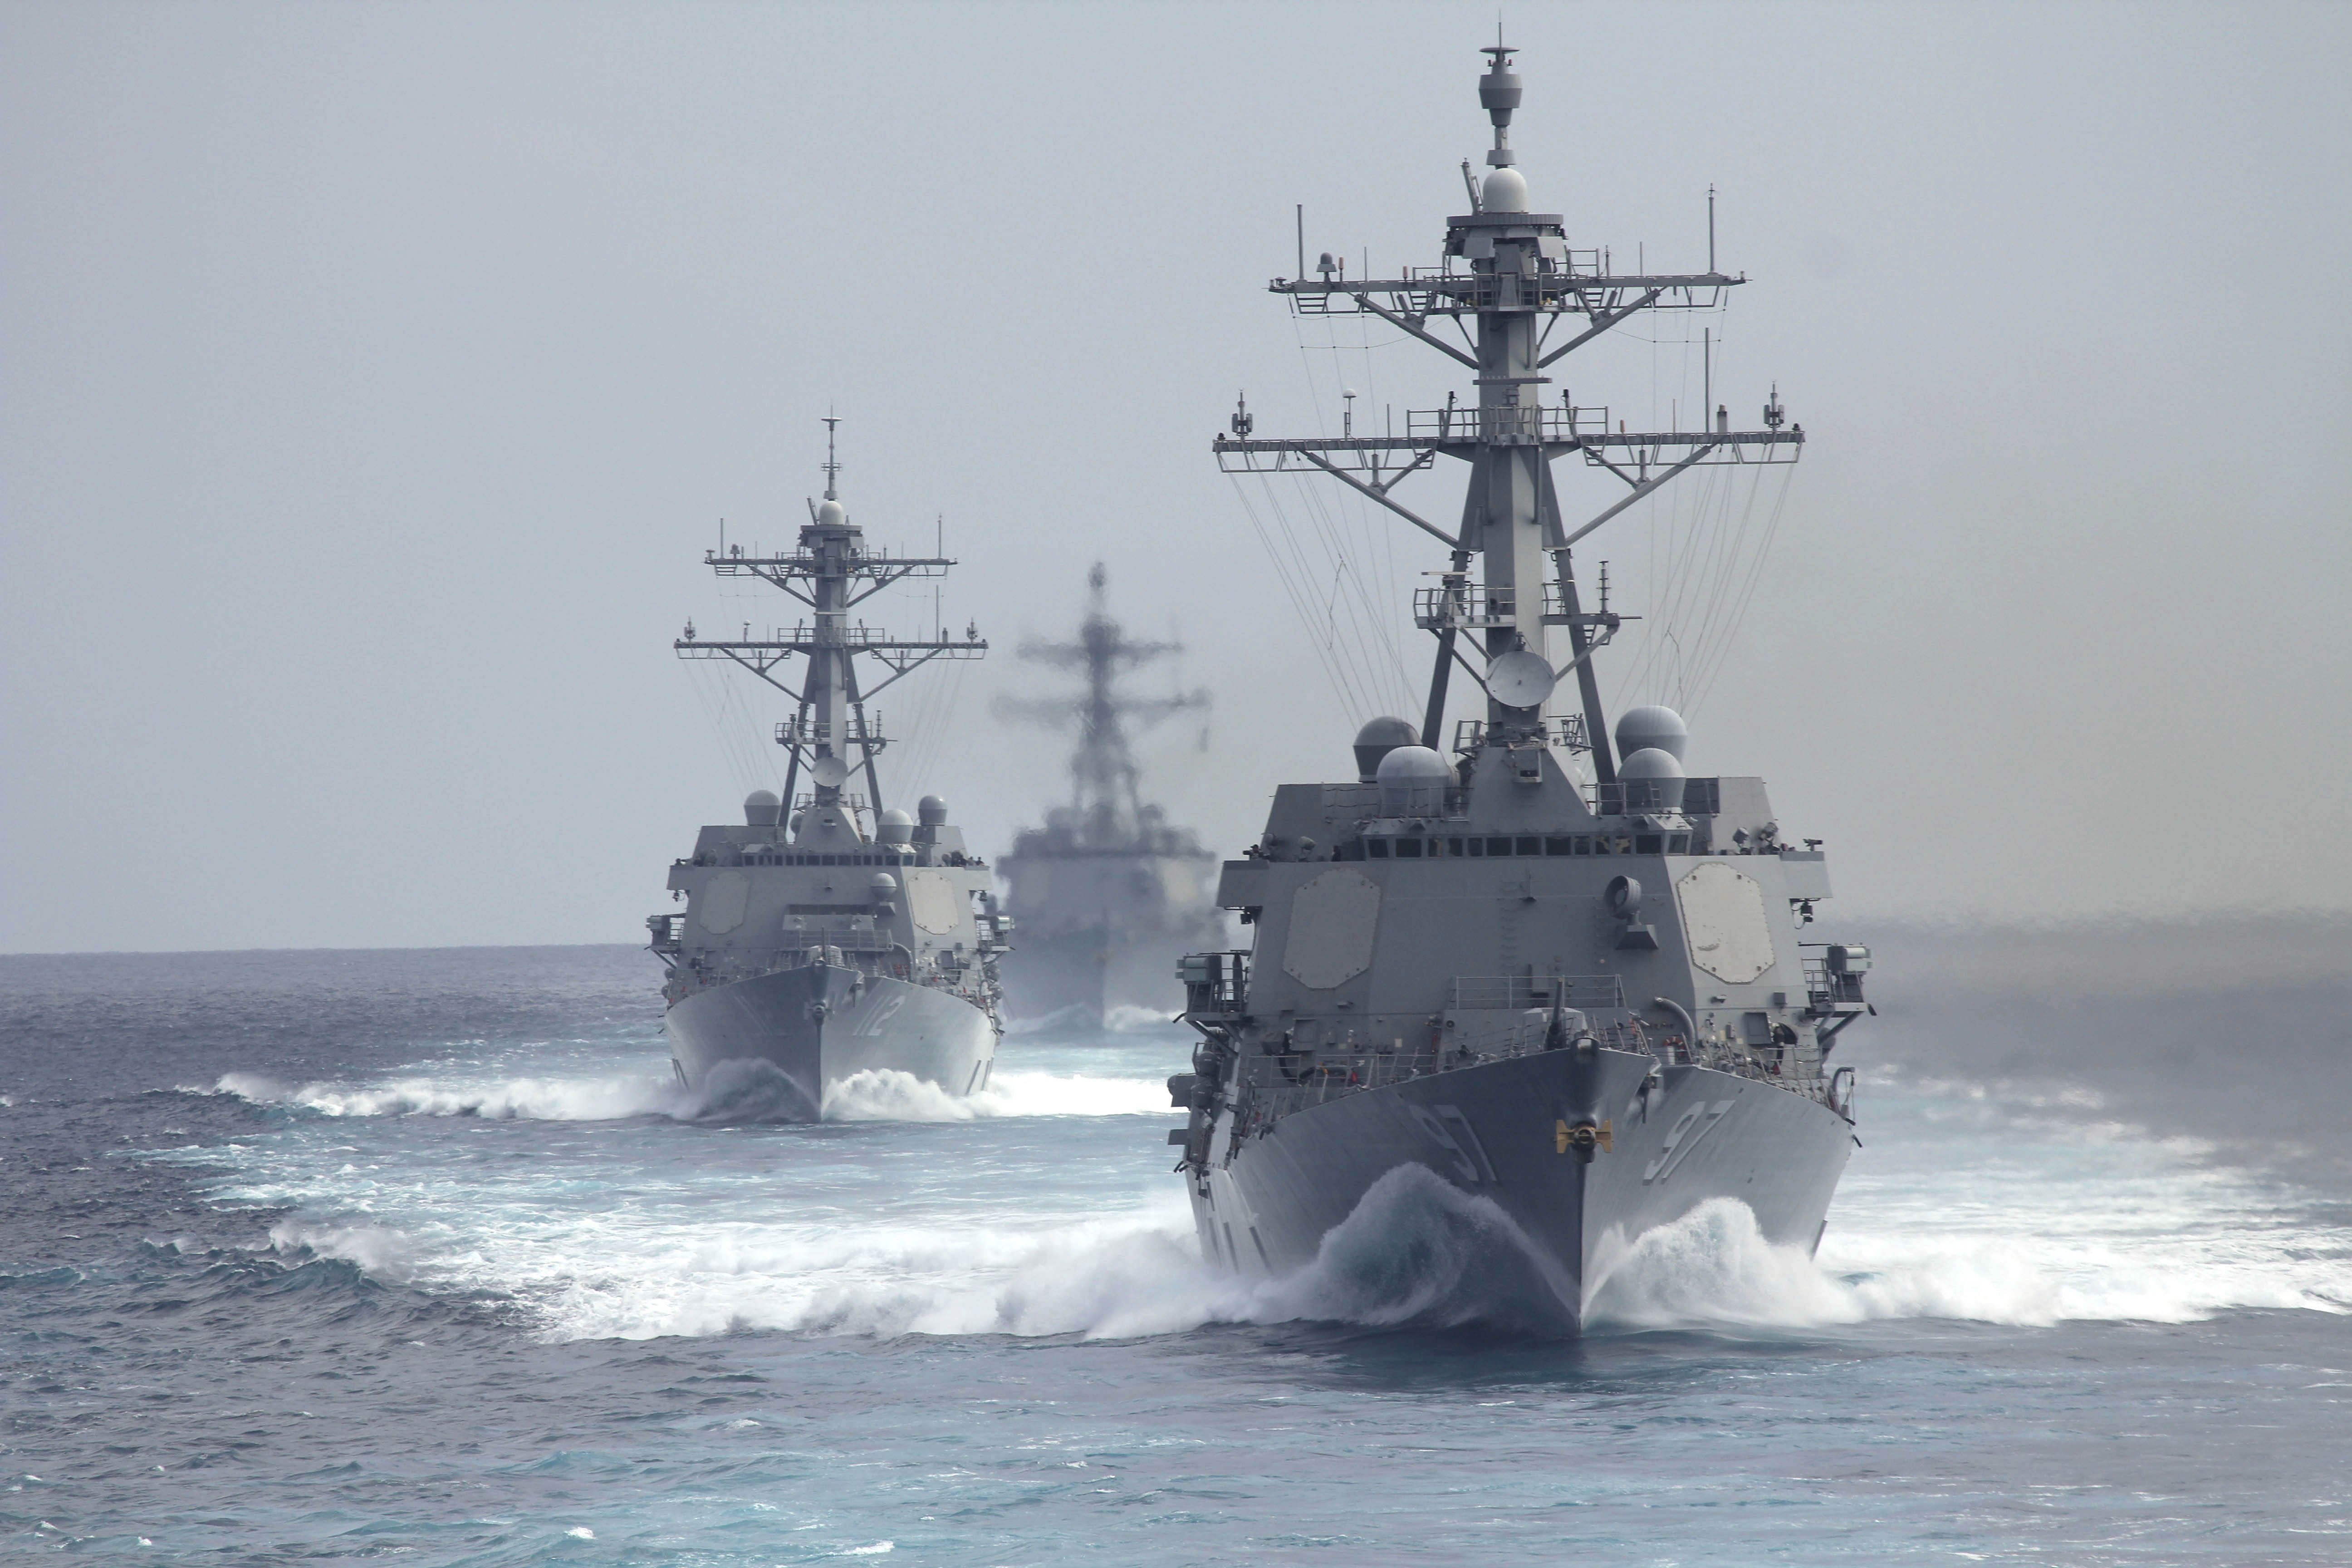 USS Halsey (DDG-97), USS Michael Murphy (DDG-112) and USS Gridley (DDG-101) underway on May, 23 2014. US Navy Photo